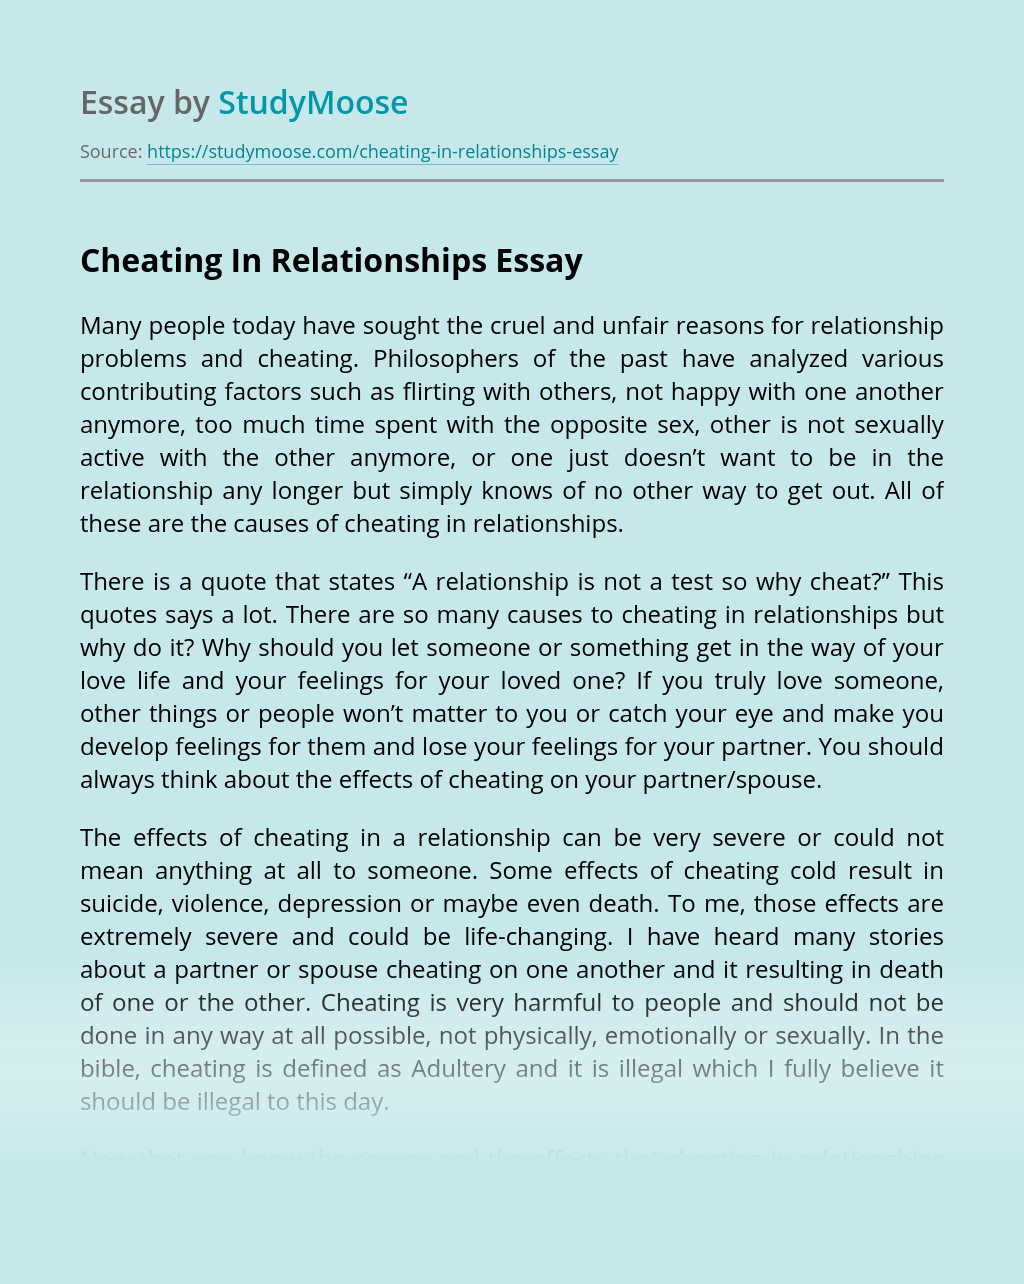 Cheating In Relationships